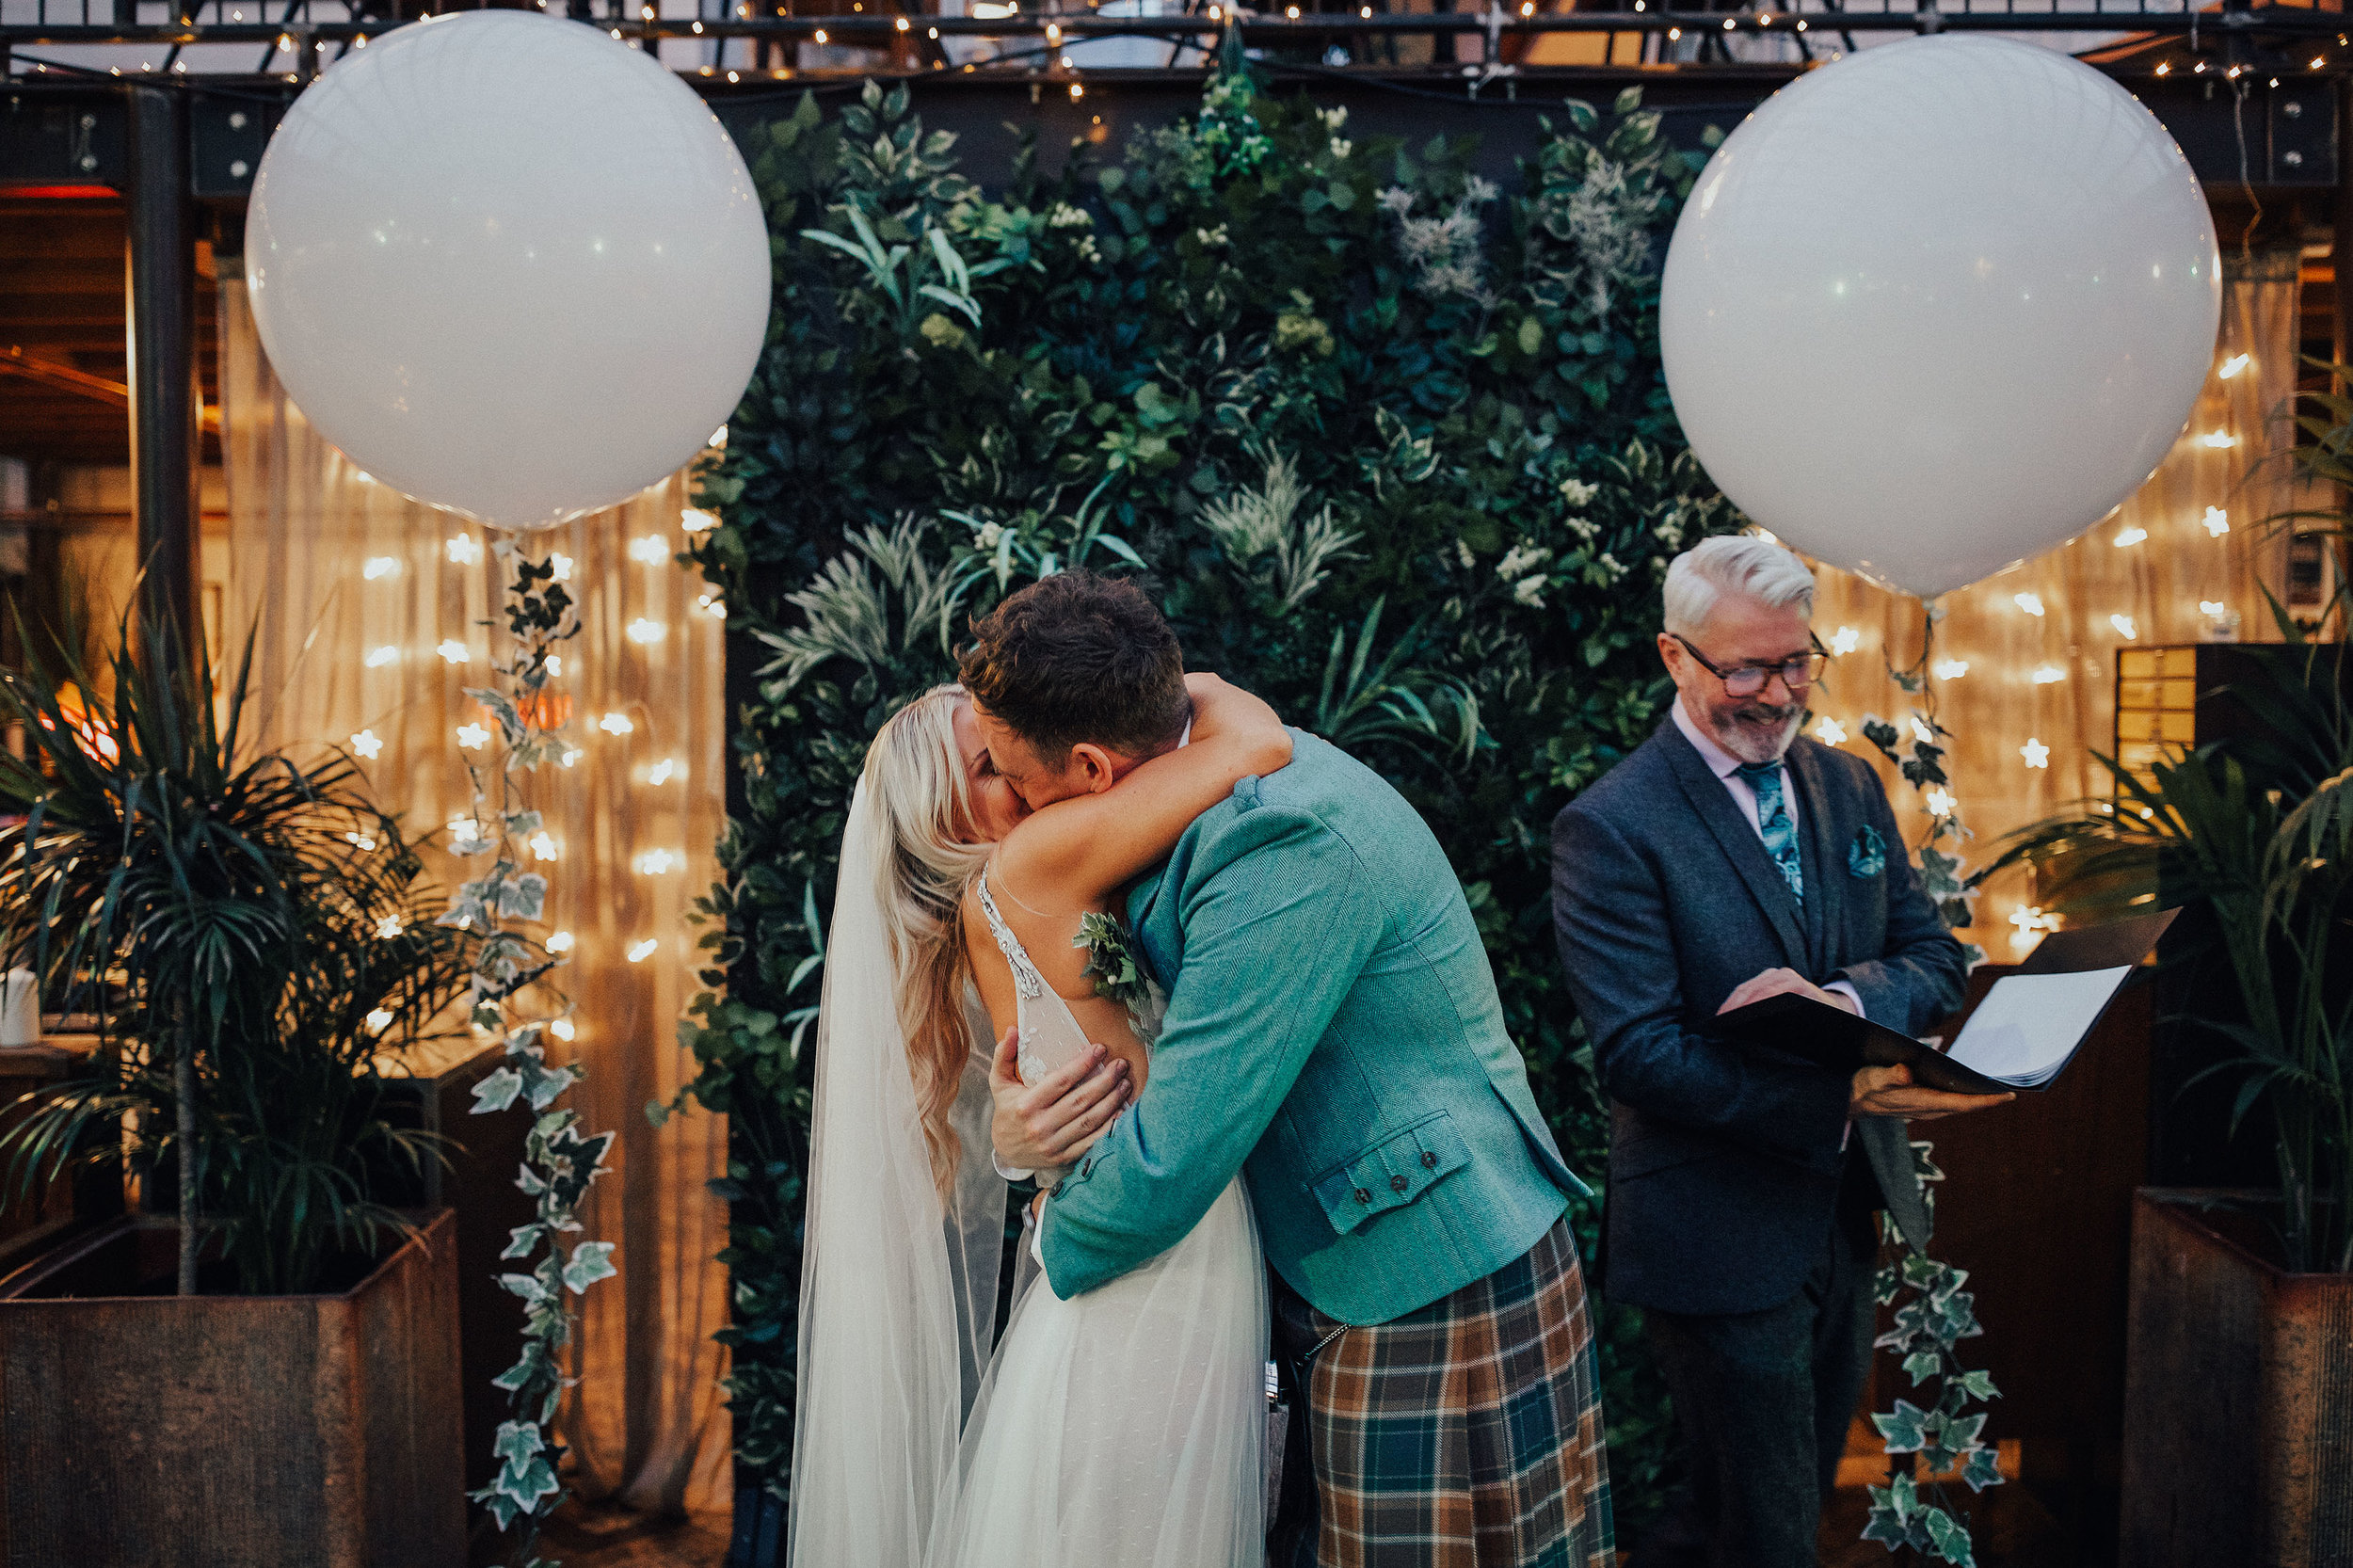 PJ_PHILLIPS_PHOTOGRAPHY_2018_SCOTLAND_WEDDING_PHOTOOGRAPHER_401.jpg